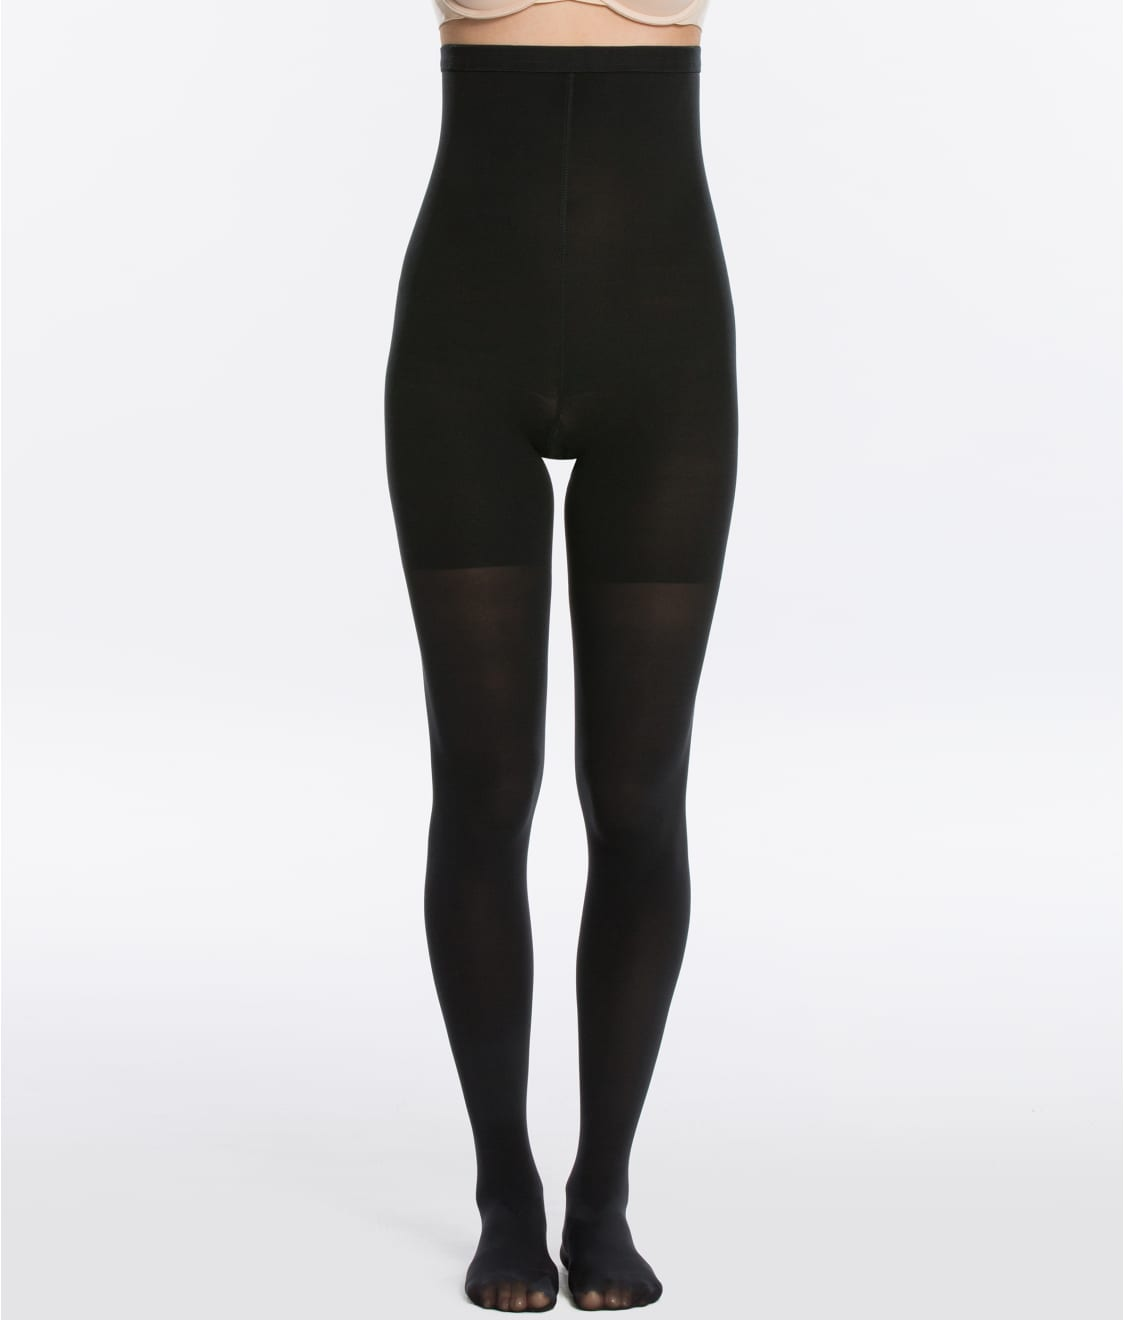 f16b8e77b8e SPANX Luxe Leg High-Waist Tights